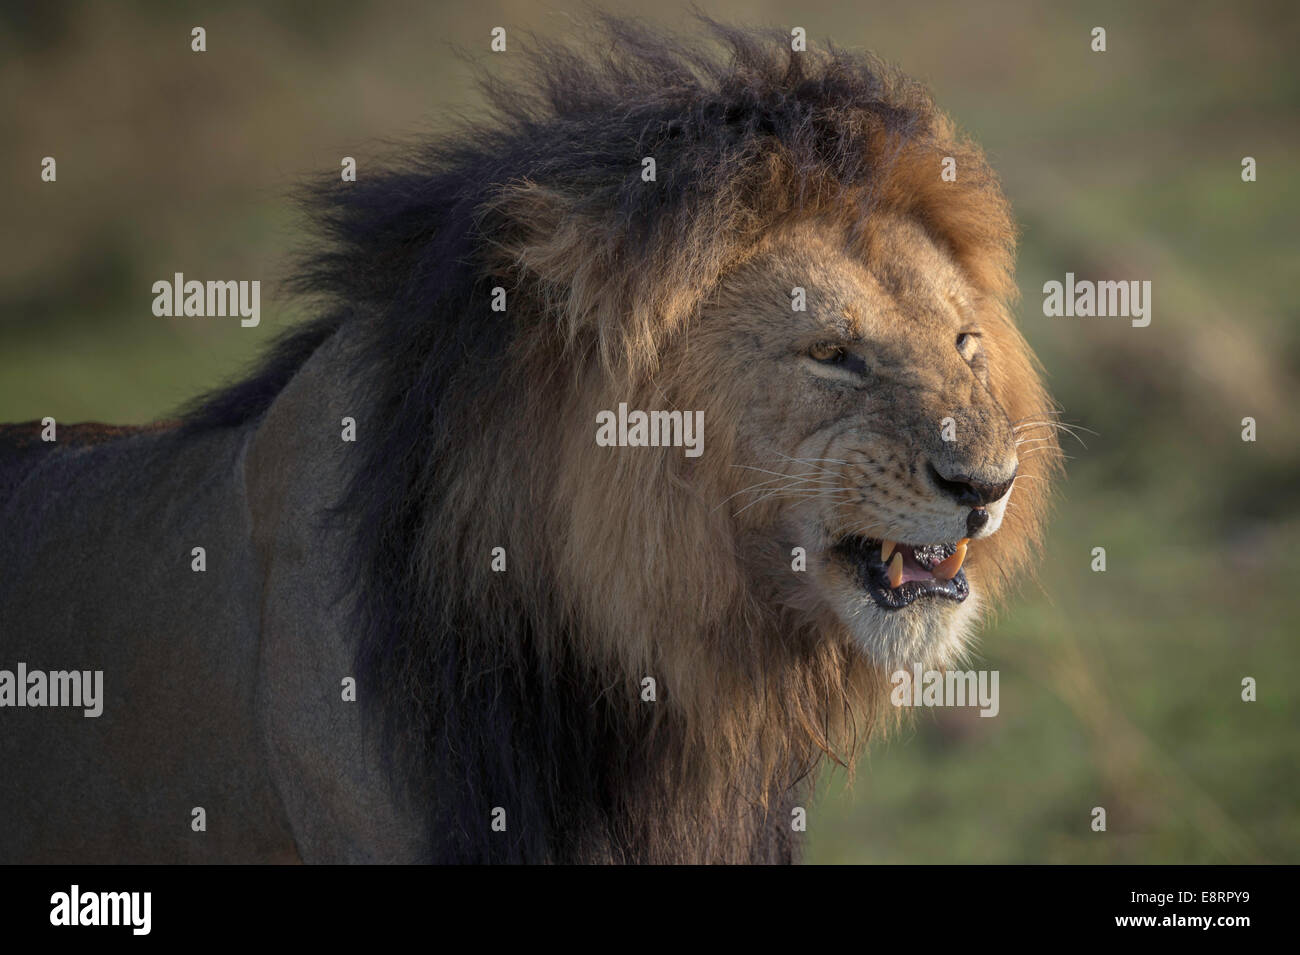 Black-maned lion snarling in close-up - Stock Image